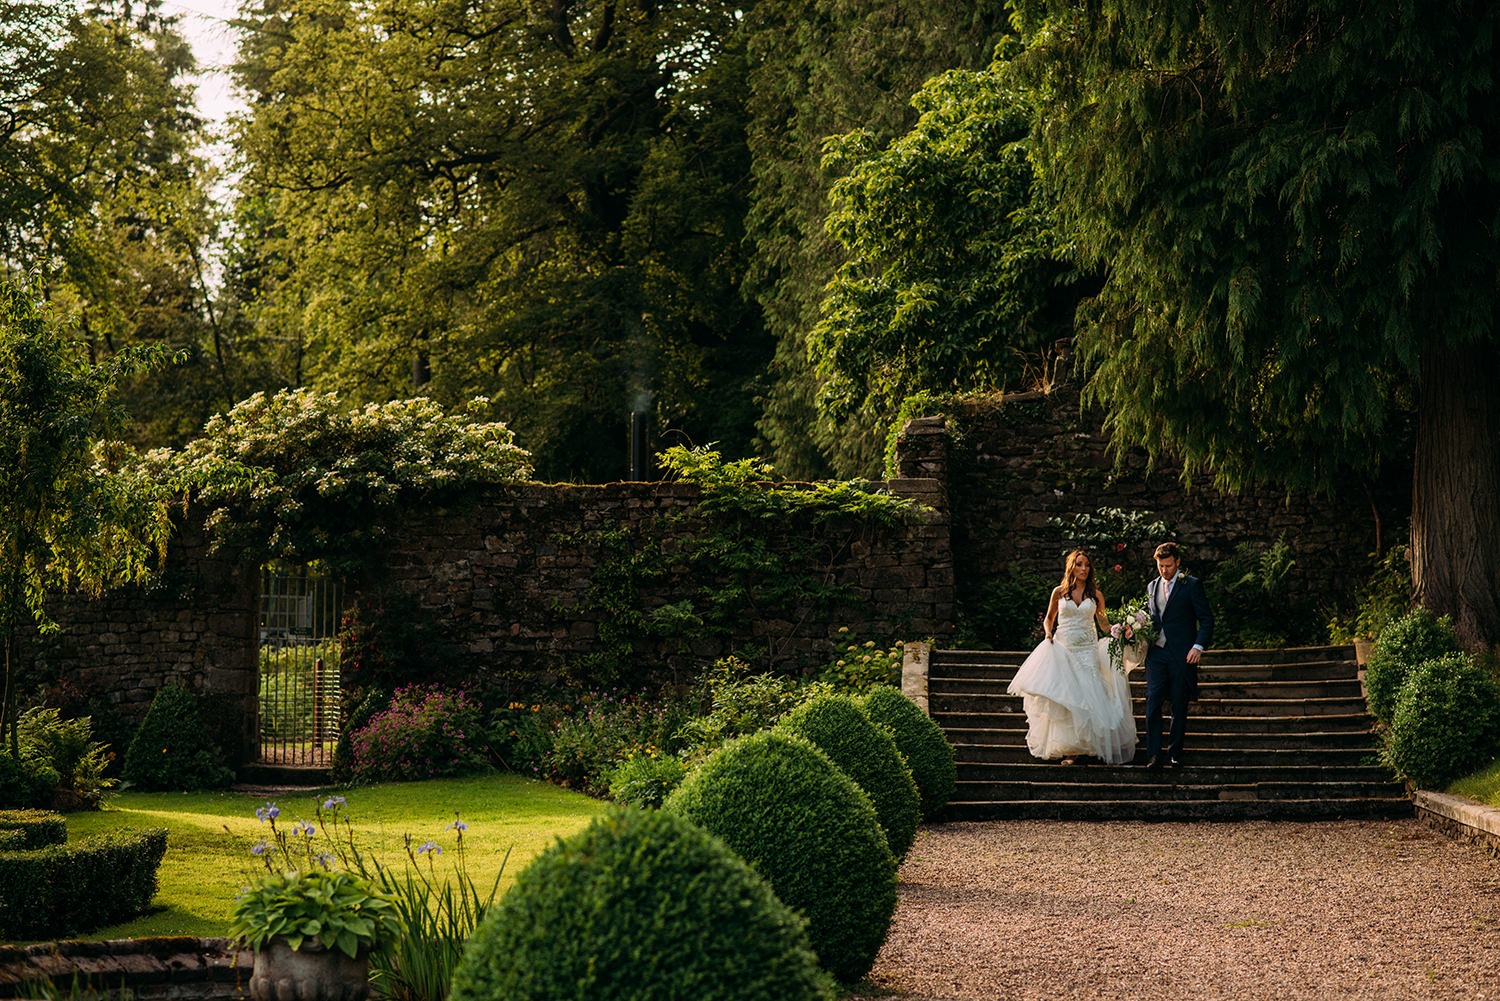 colour photo of bride and groom walking through the grounds